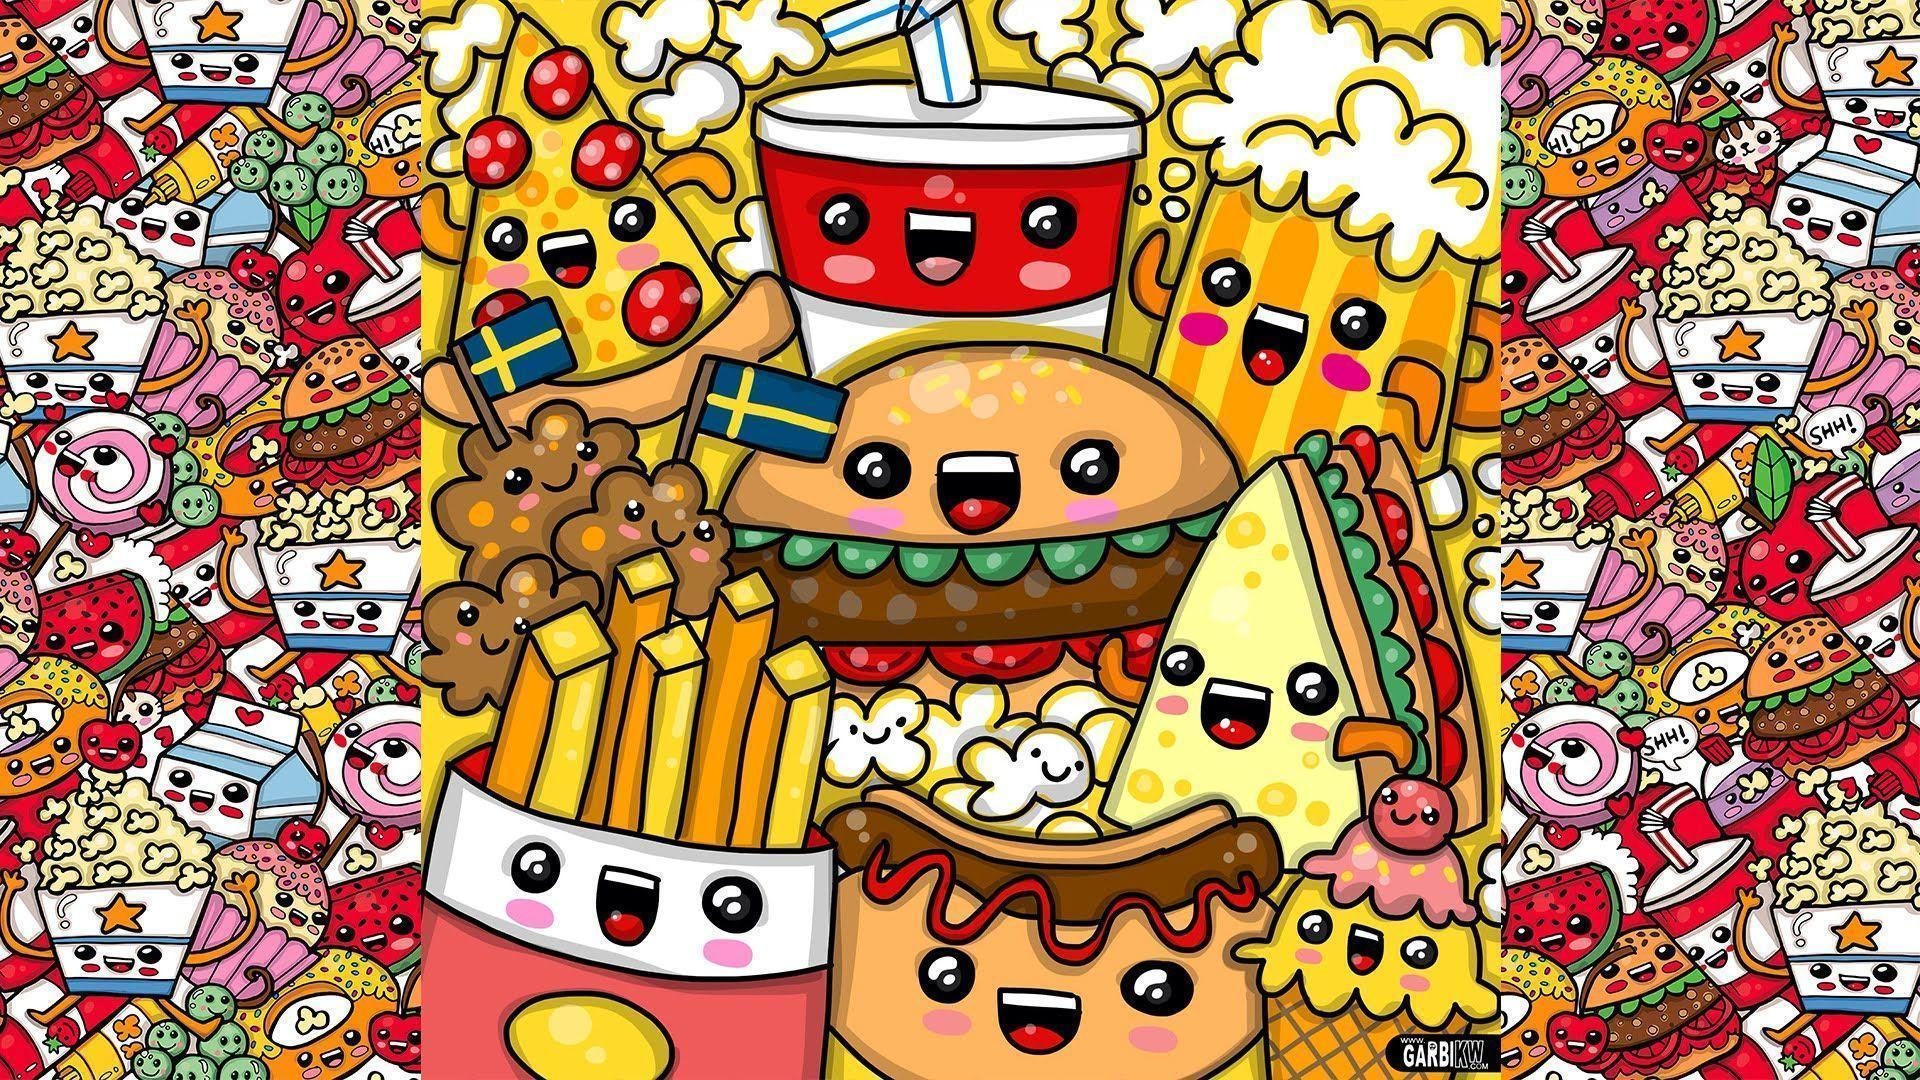 kawaii food cute wallpapers fast cartoon drawings party backgrounds drawing draw wallpaperaccess quality doodle amazing kw garbi resolution pretty getdrawings